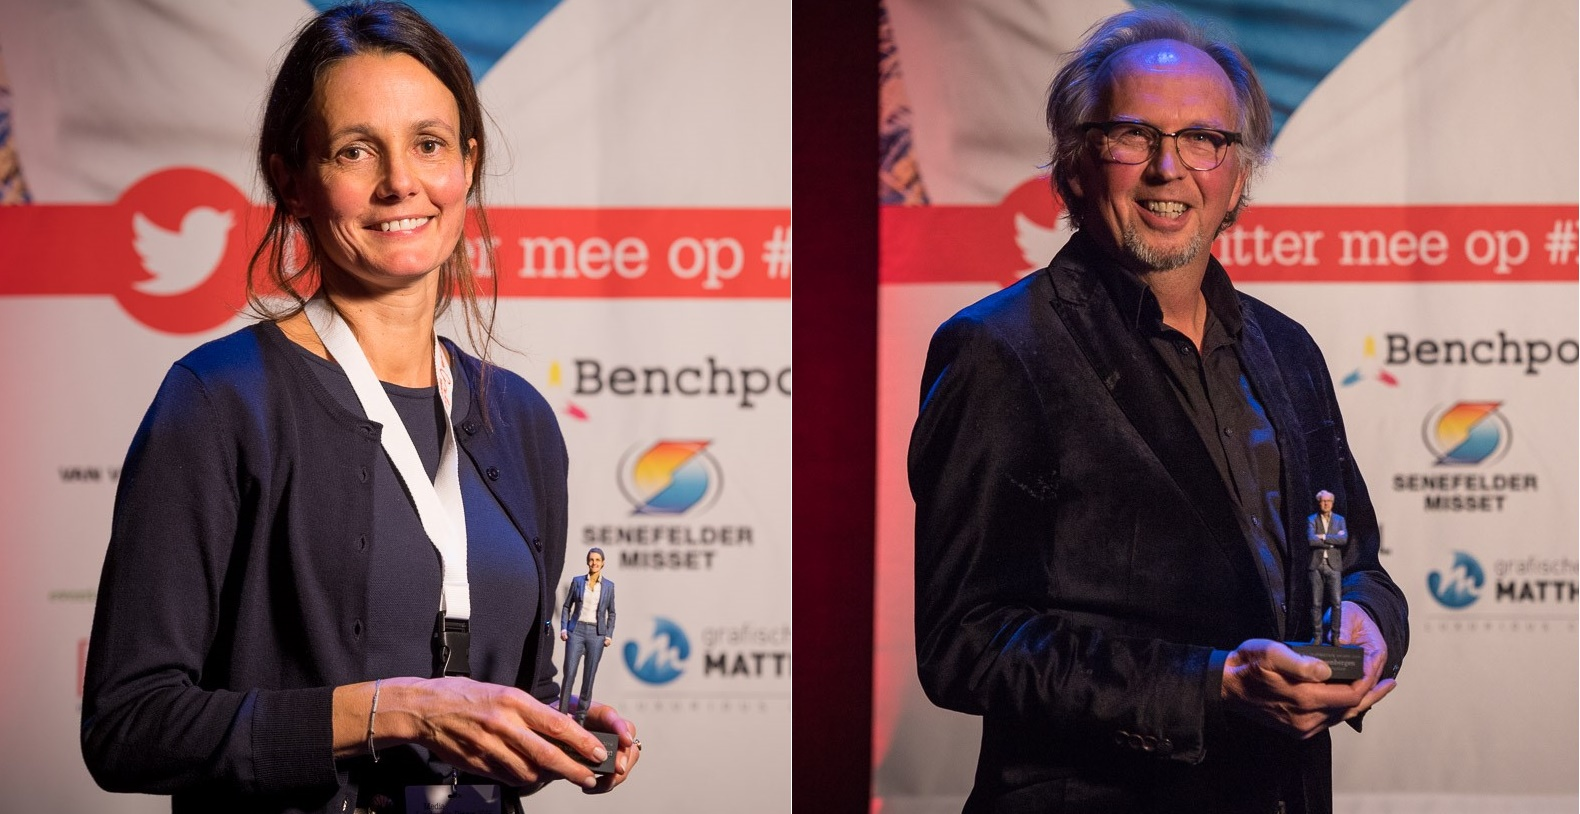 Eugenie van Wiechen wint Media Leadership Award, Hans Steenbergen krijgt Media Inspiration Award